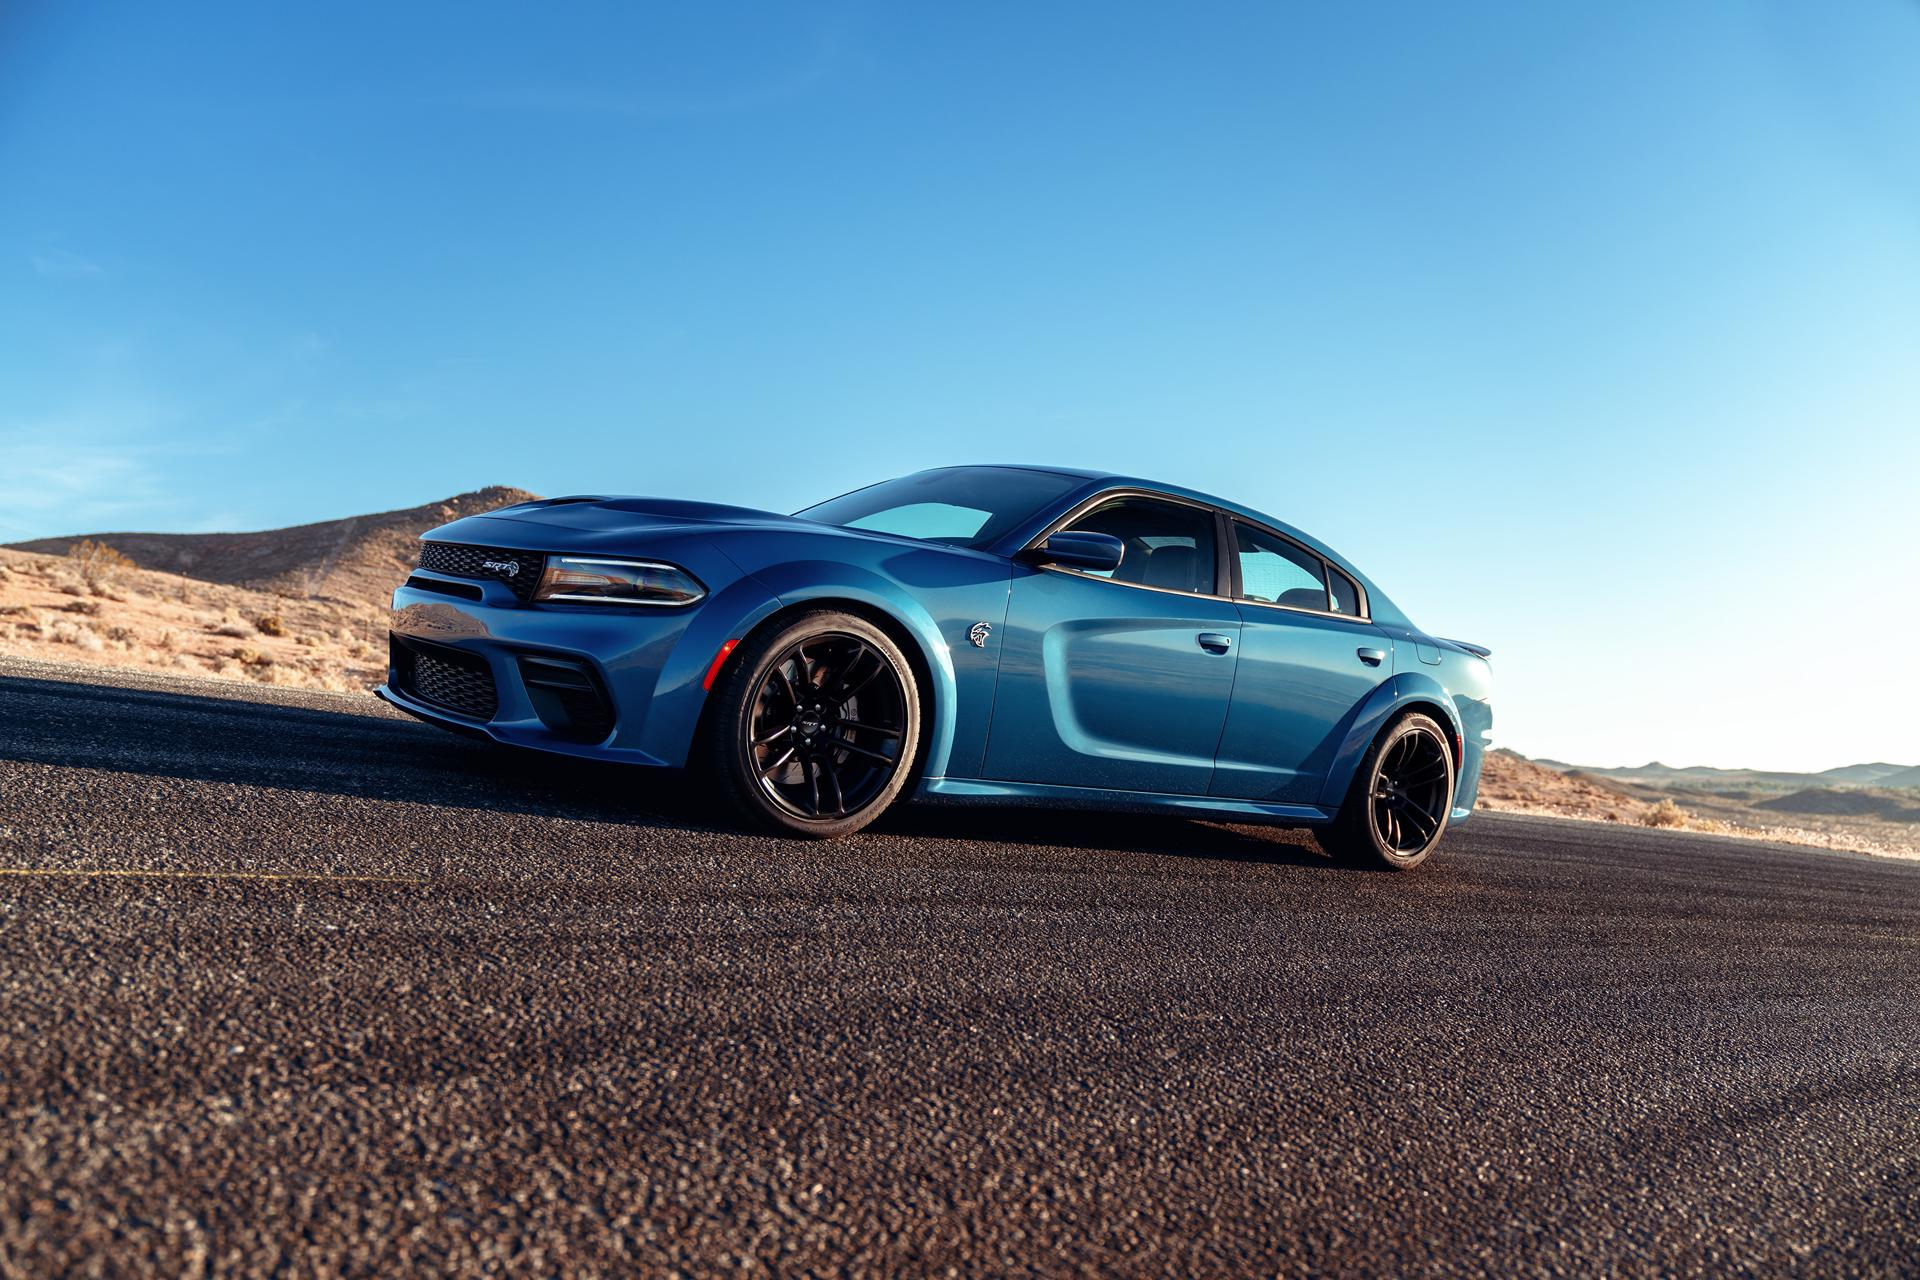 Dodge's Charger SRT Hellcat Widebody: A Fast And Powerful Four-Door Sedan